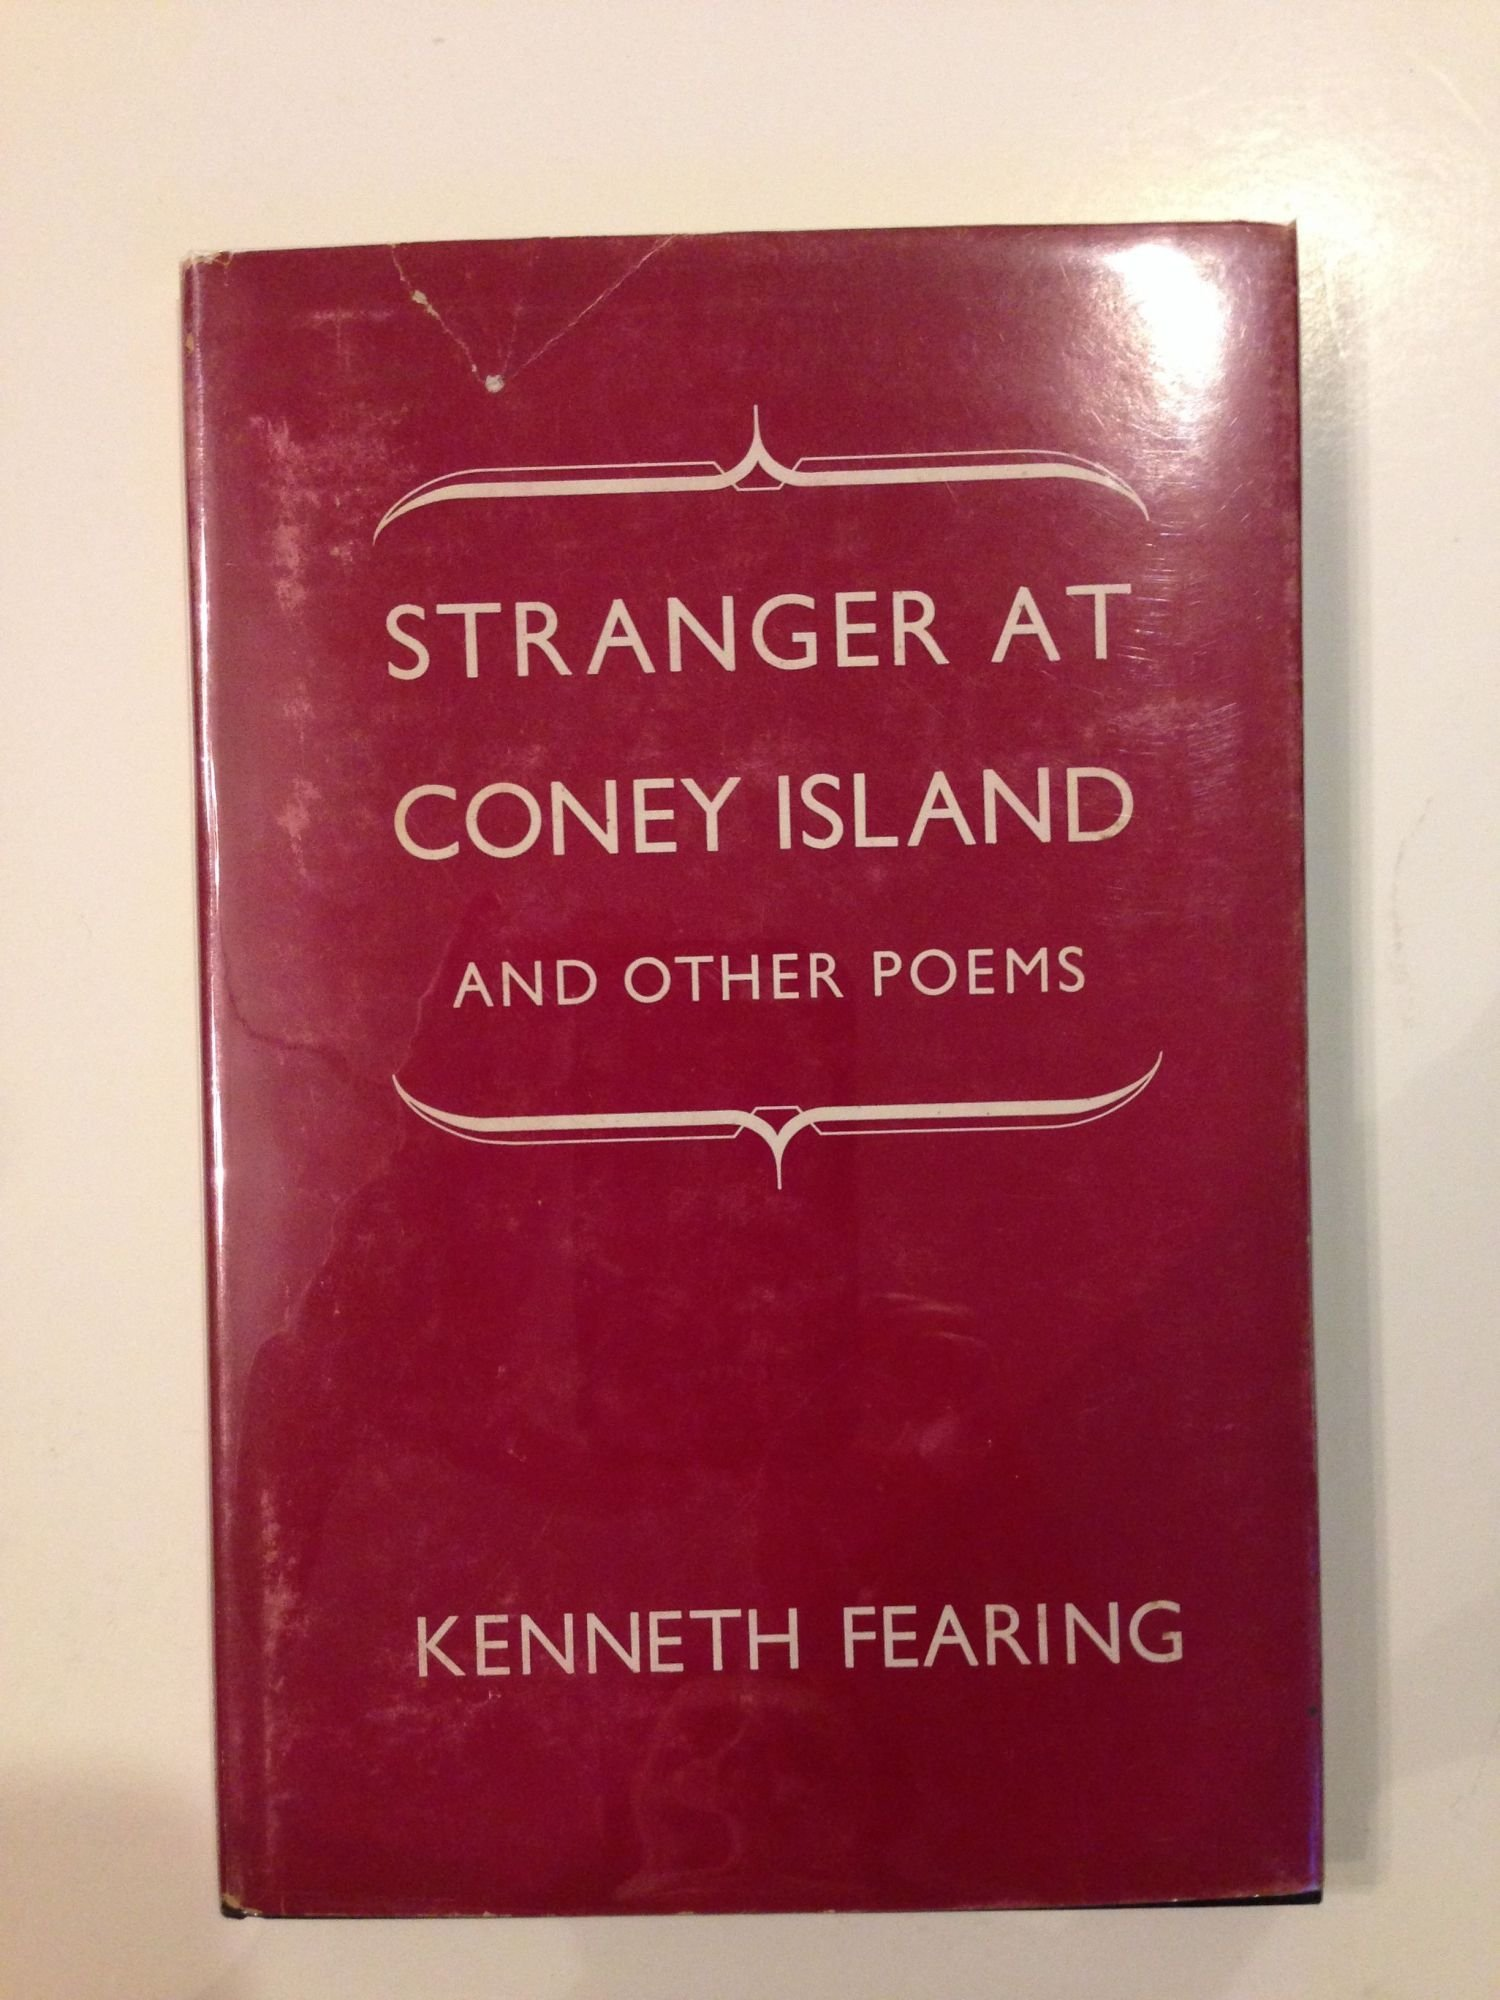 Stranger At Coney Island And Other Poems Kenneth Fearing